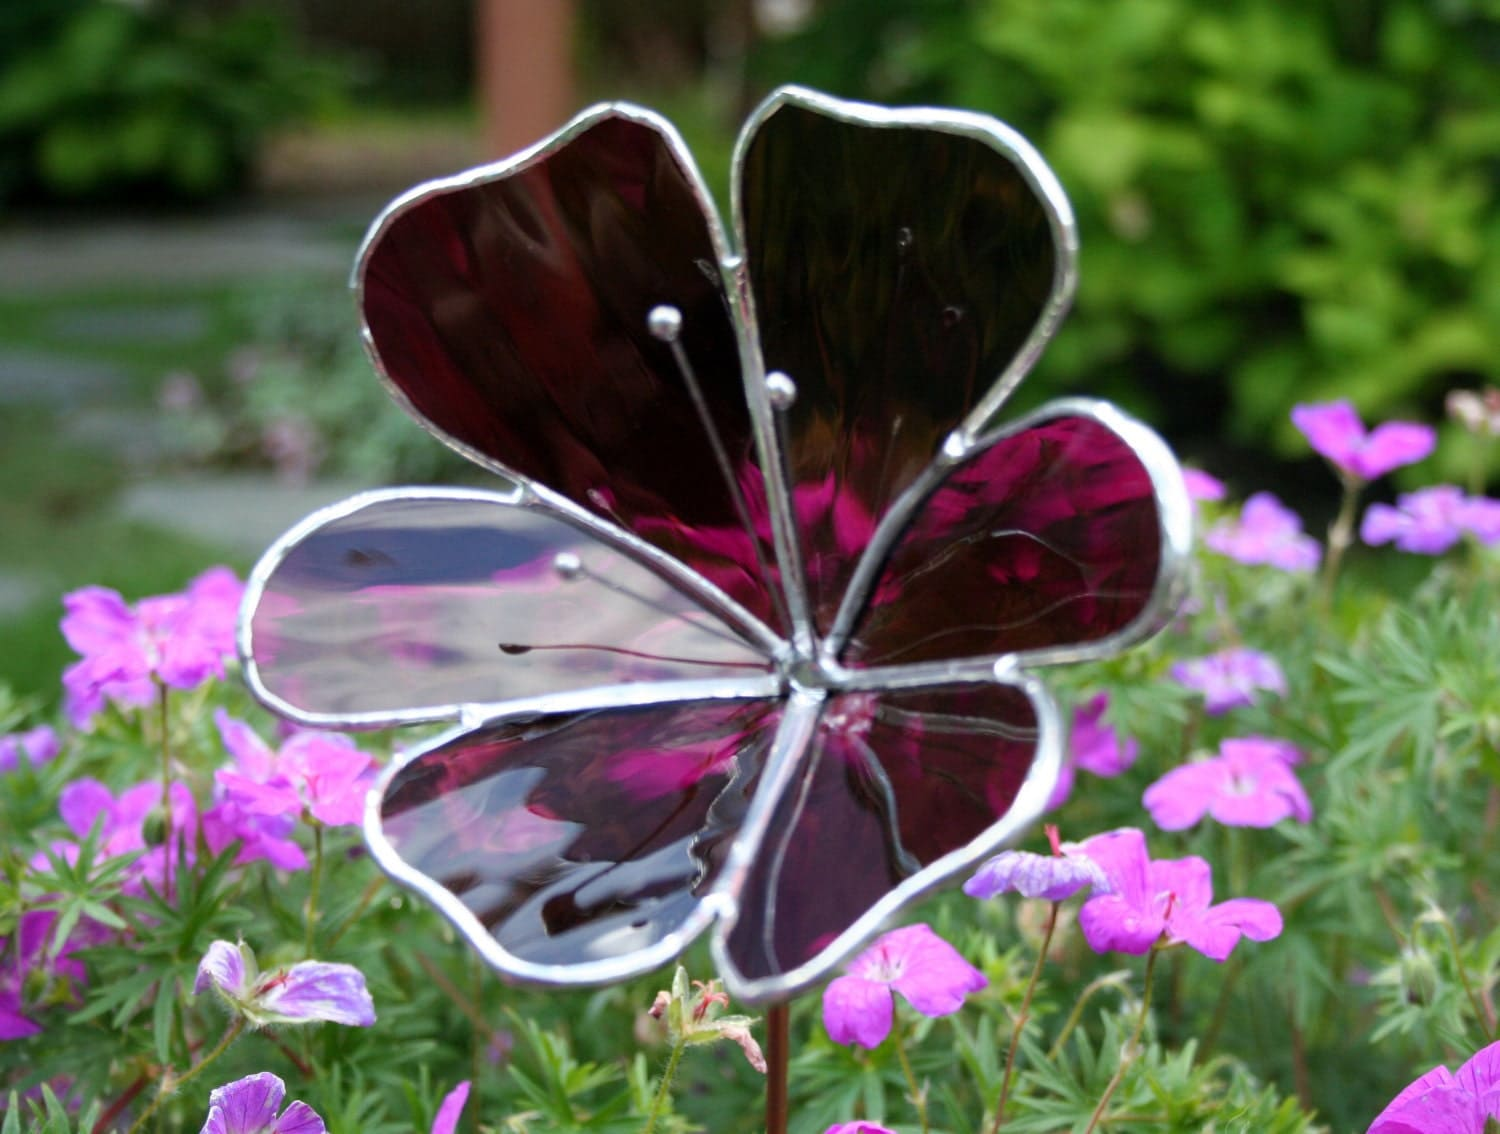 Stained glass violet flower garden ornament for Flower garden ornaments